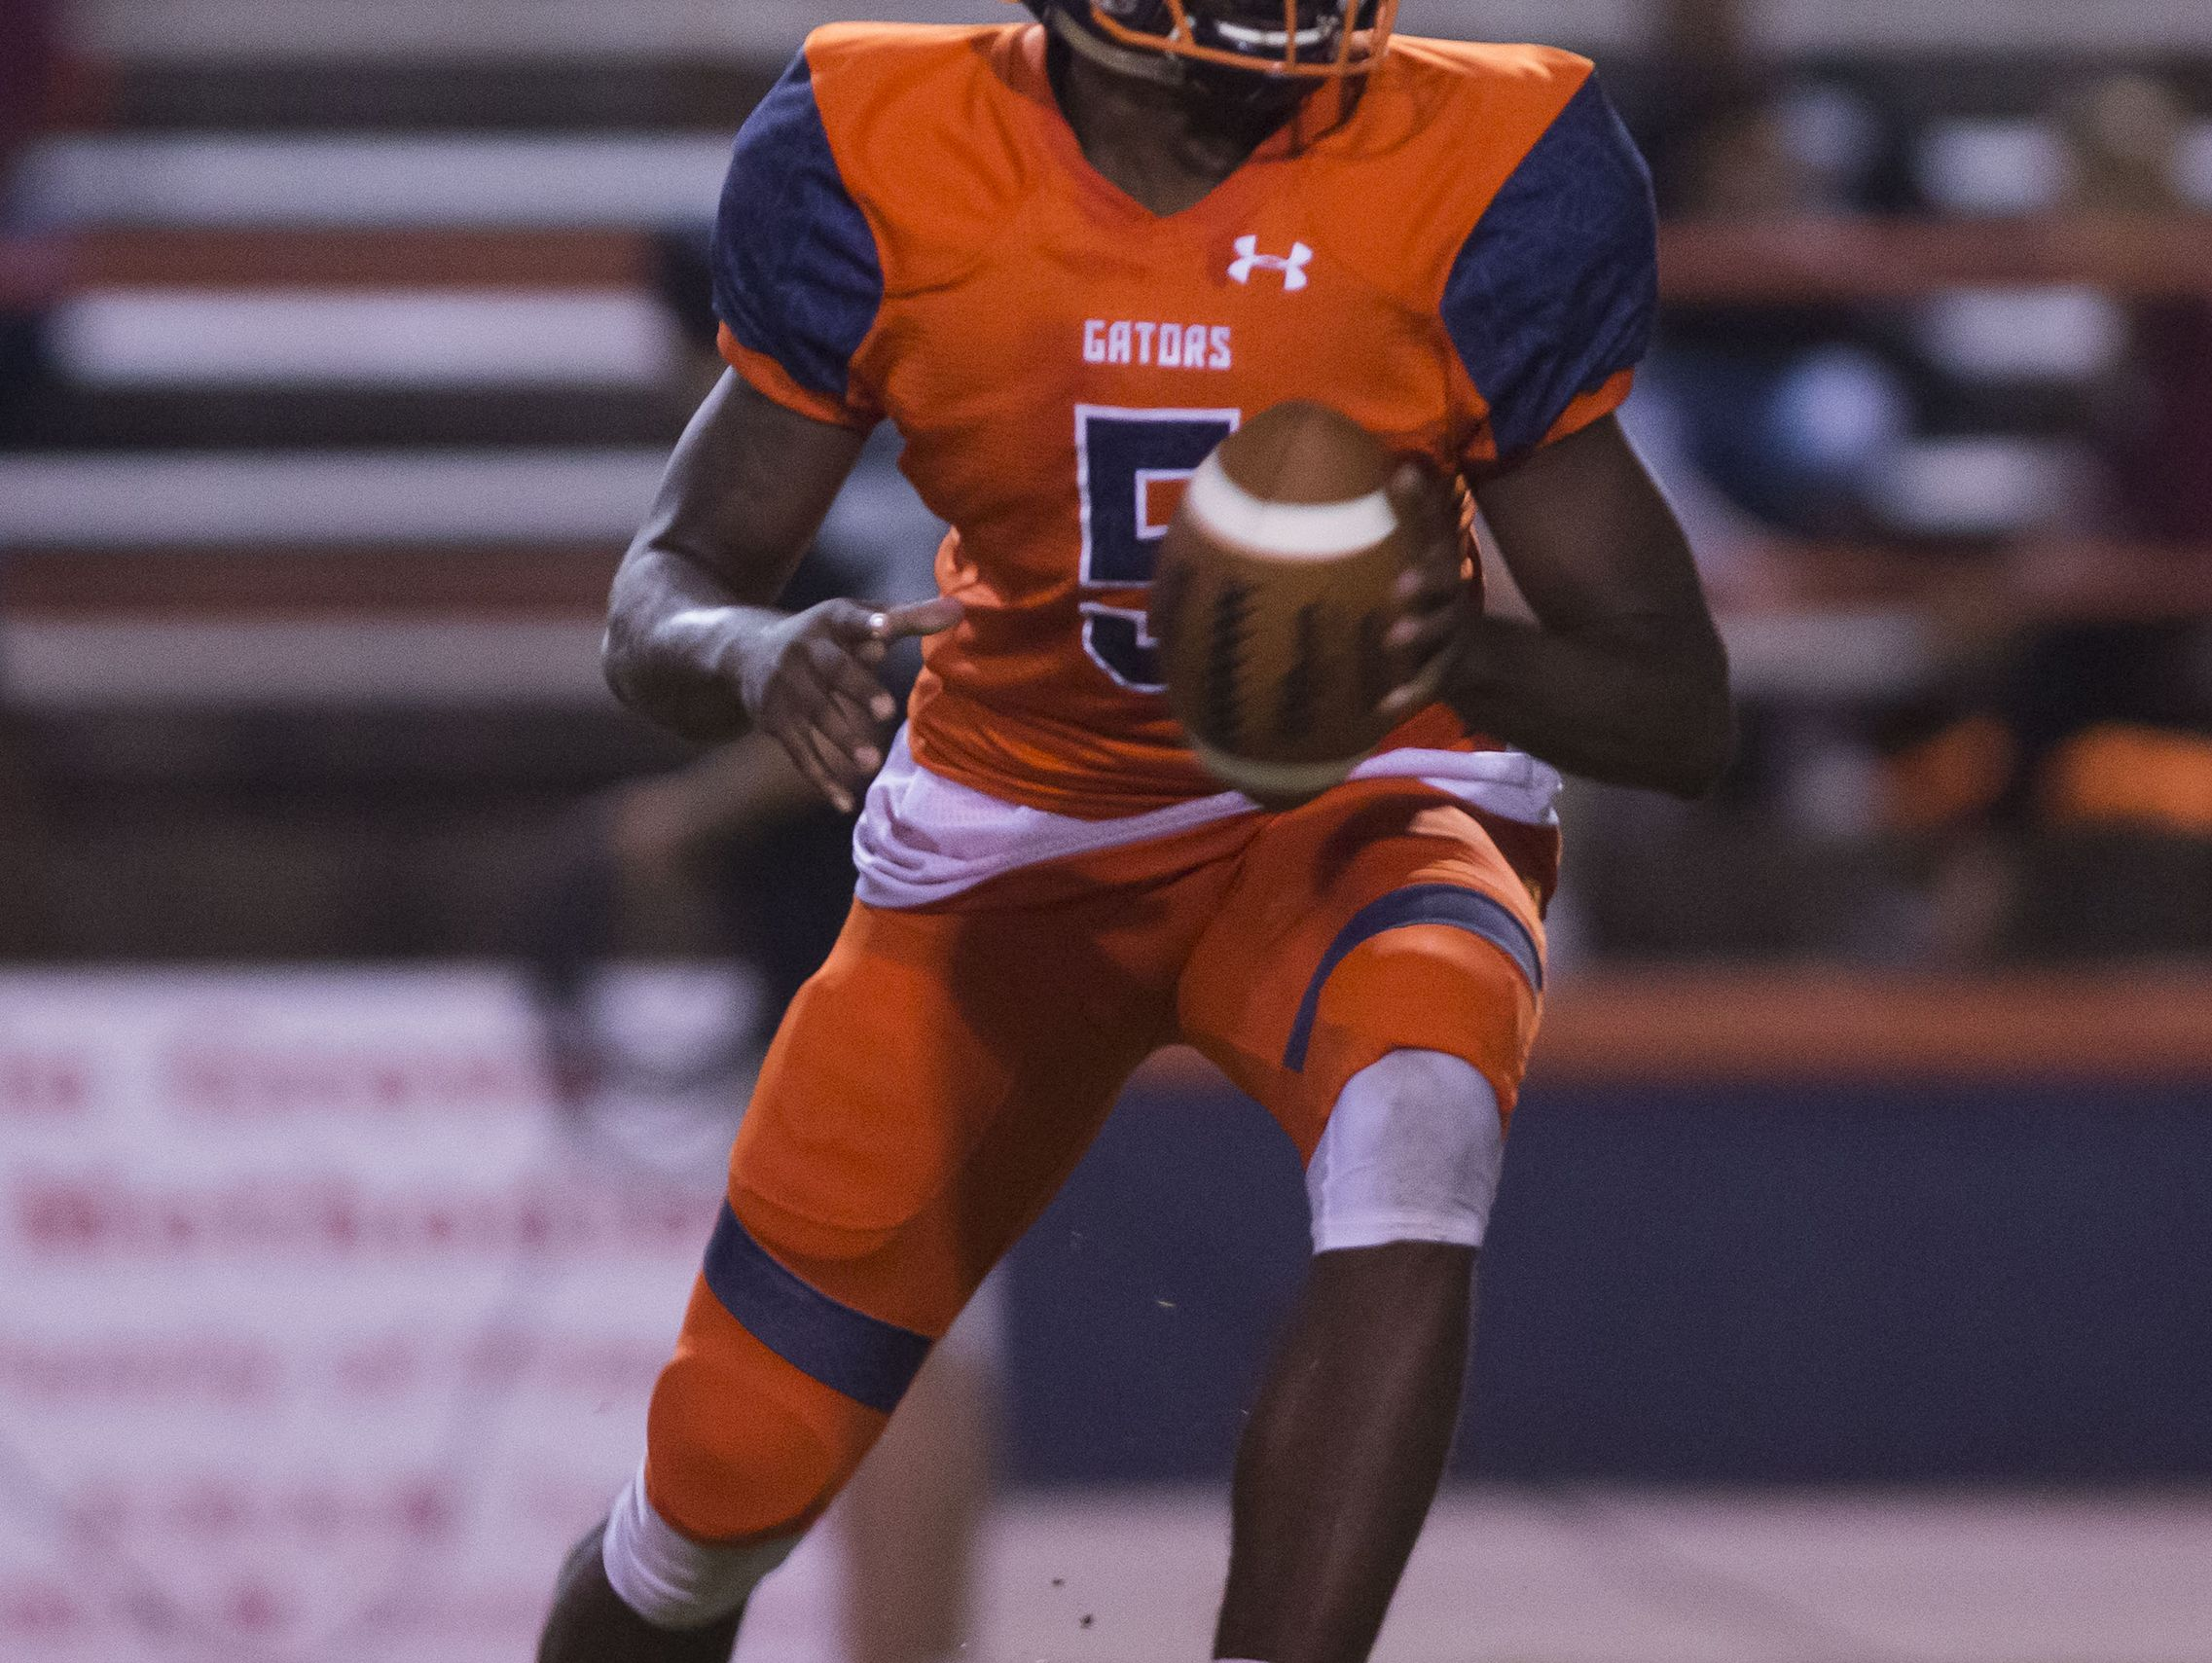 Escambia High School quarterback, Av Smith, (No. 5) prepares to pitch the ball to an approaching running back during Friday night's game against Navarre High School.